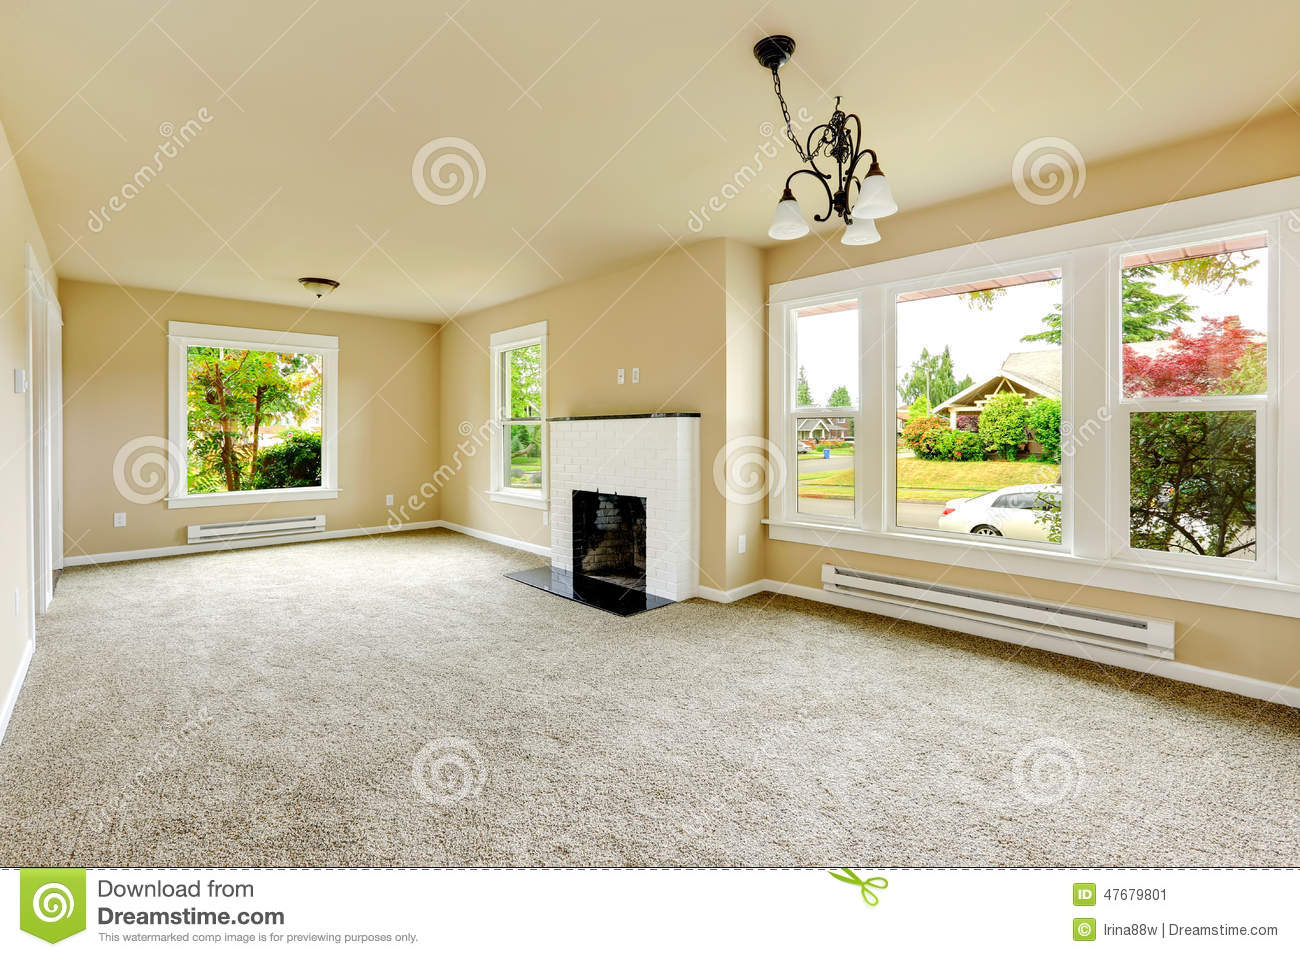 Empty Room With White Brick Background Fireplace Stock Image - Image ...